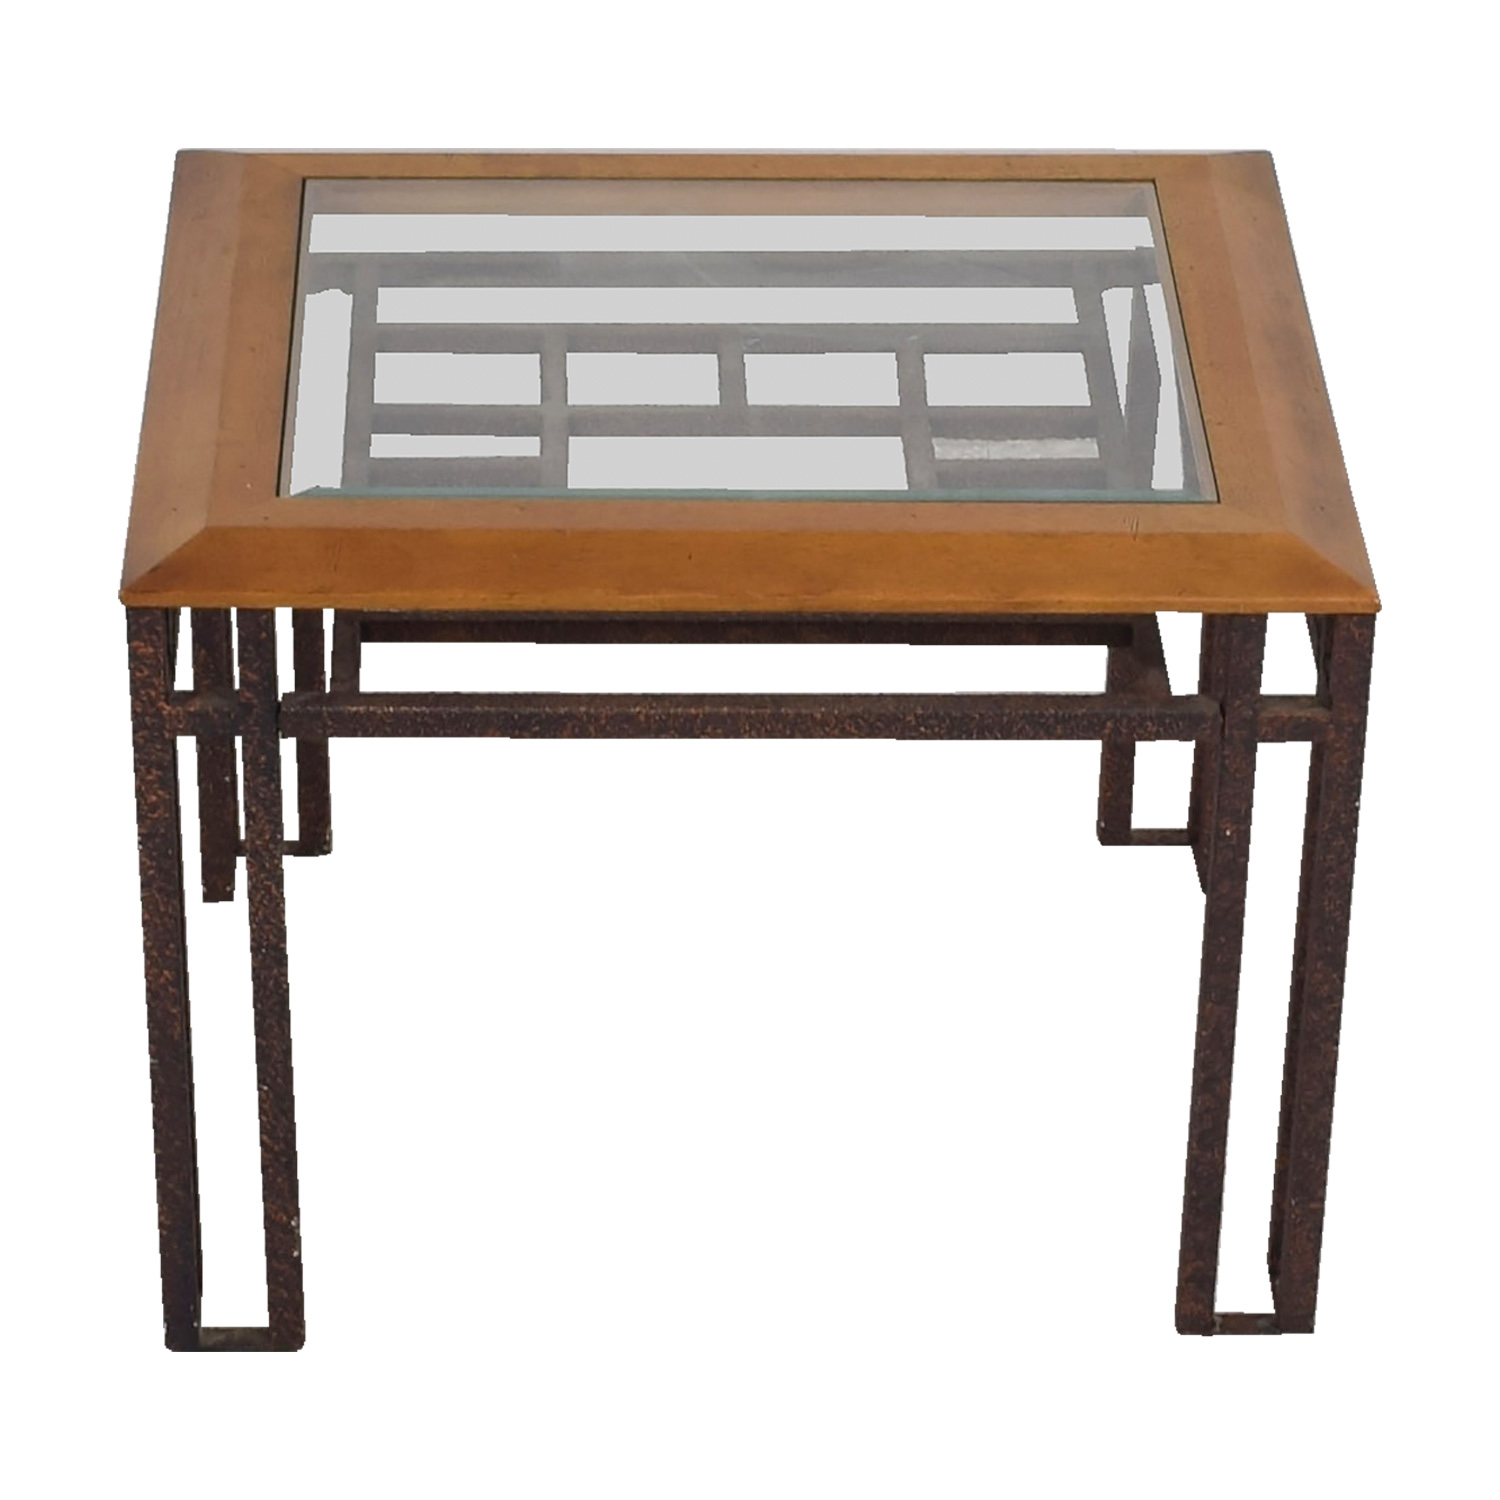 shop Rustic Brass Wood and Glass End Table End Tables